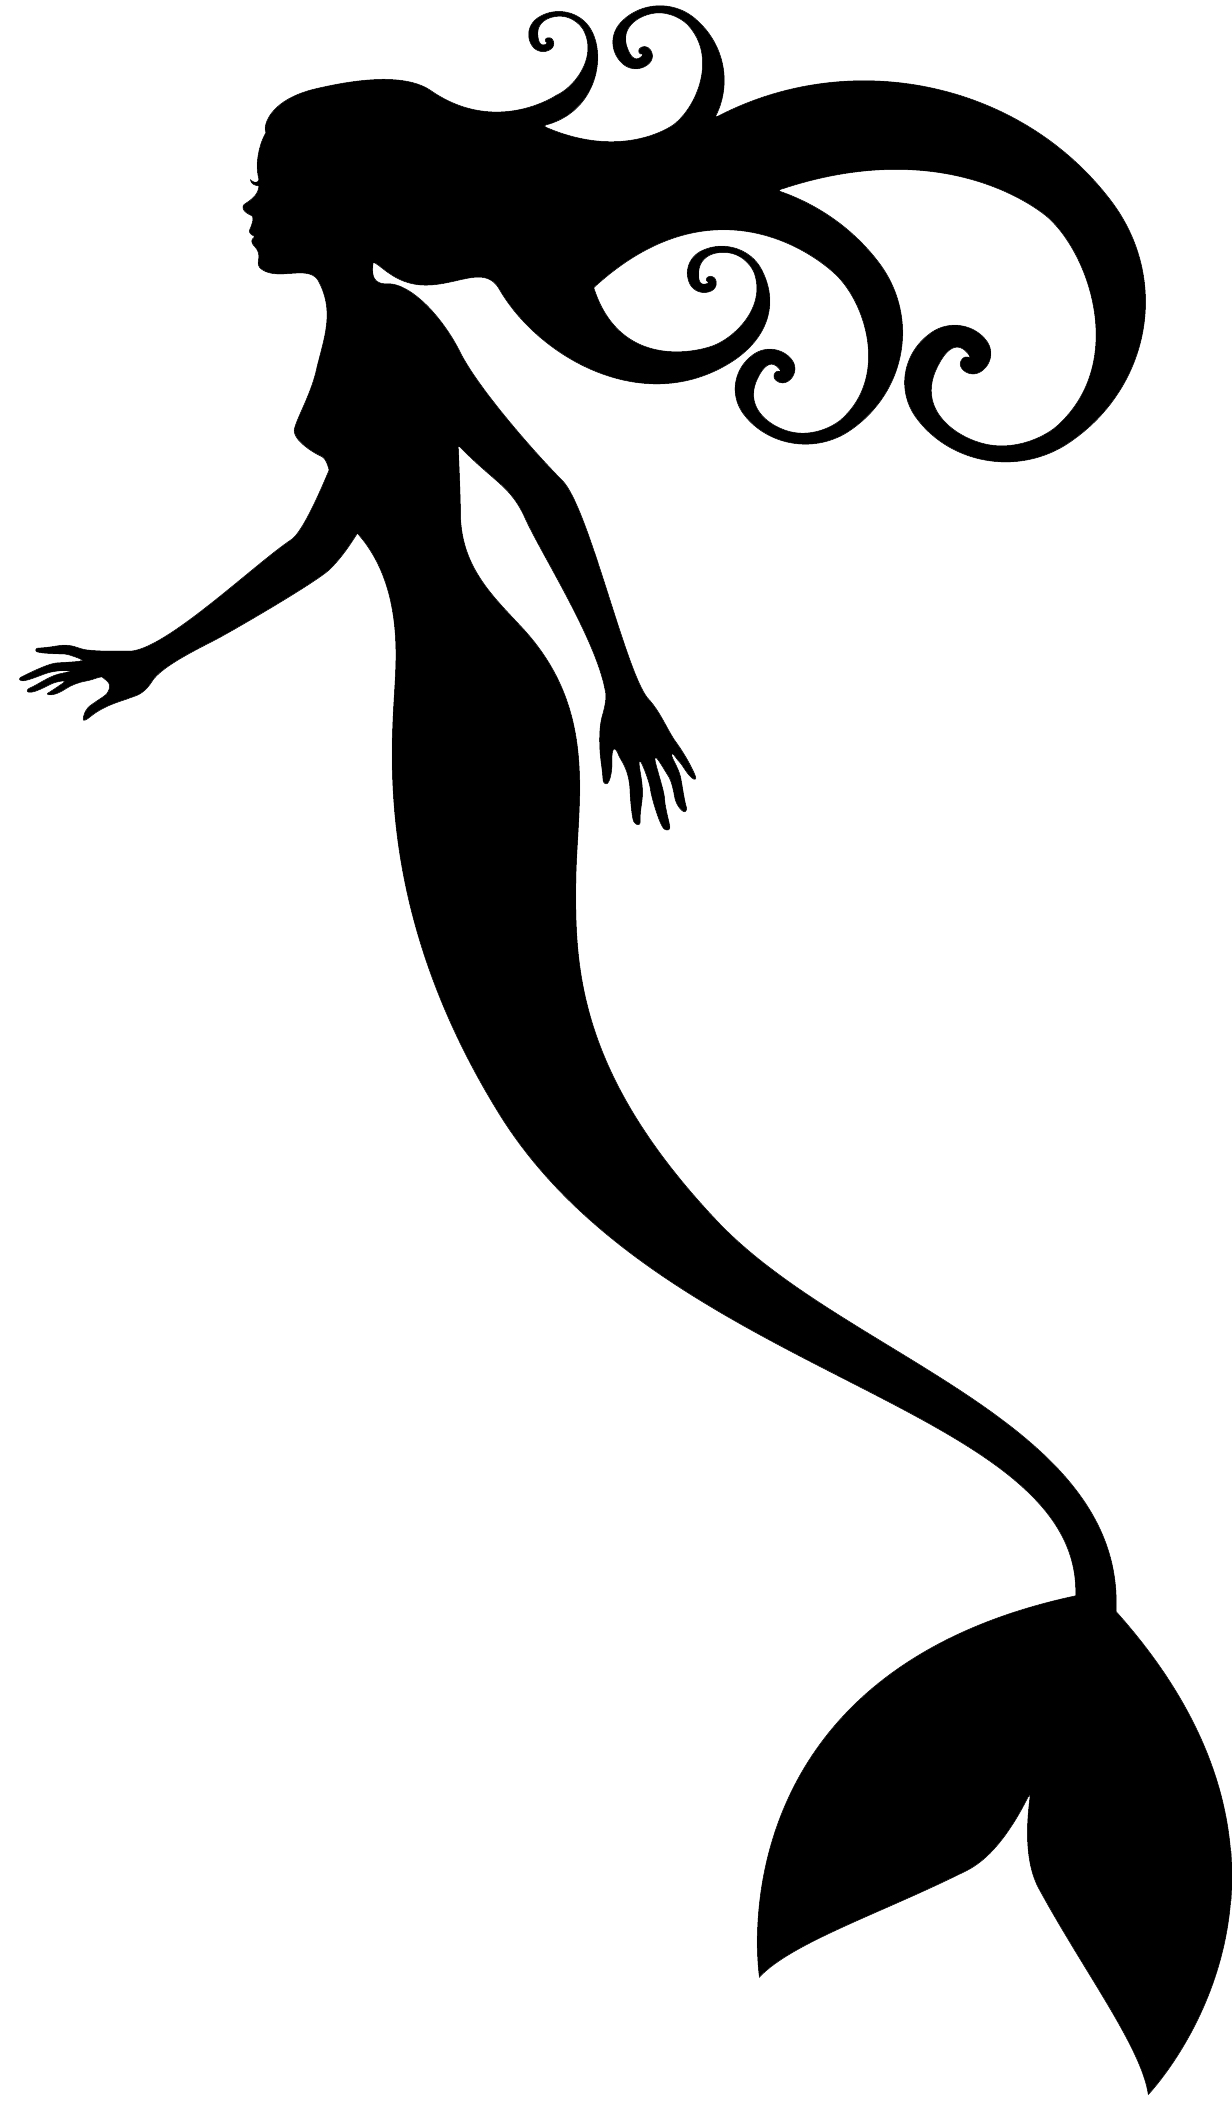 African clipart mermaid. Mermaids shadow puppet silhouette